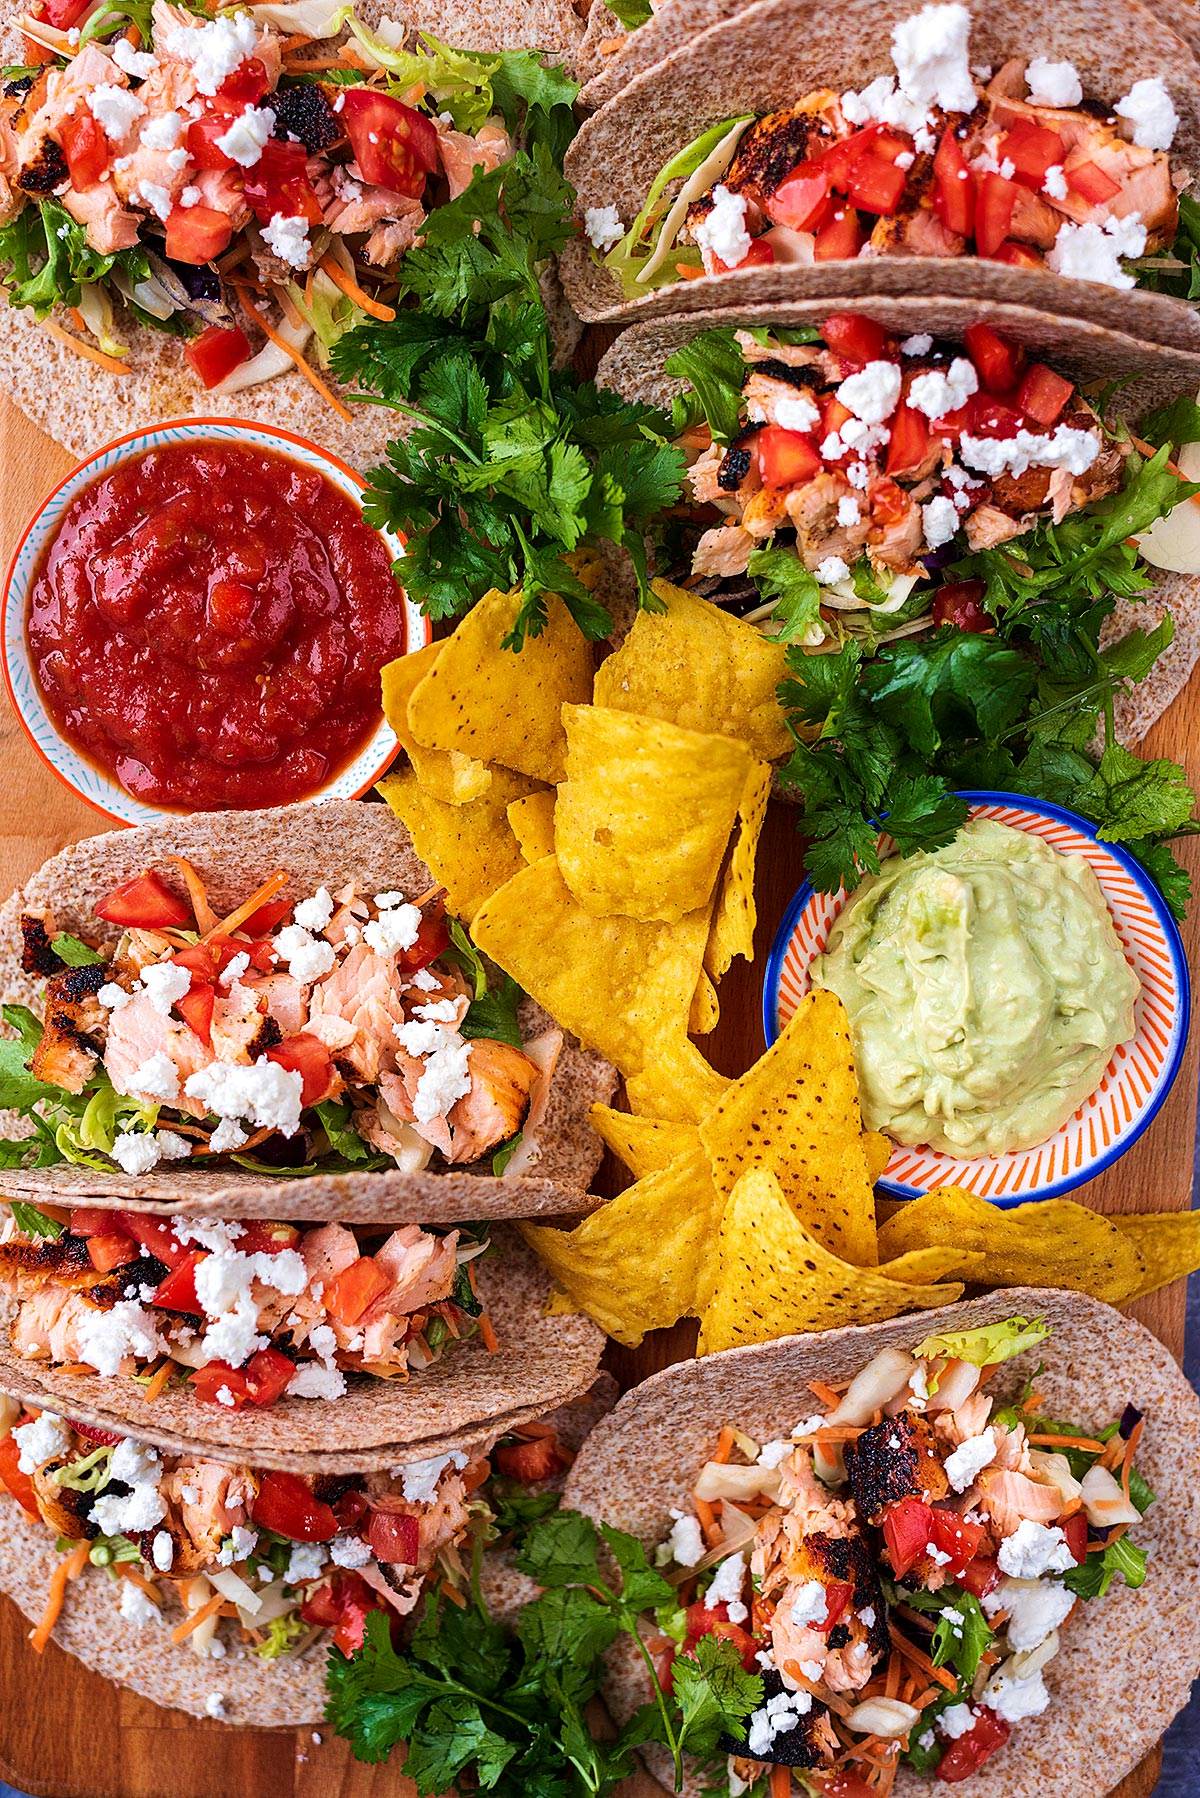 Seven salmon tacos arranged on a serving board with chips, dips and herbs